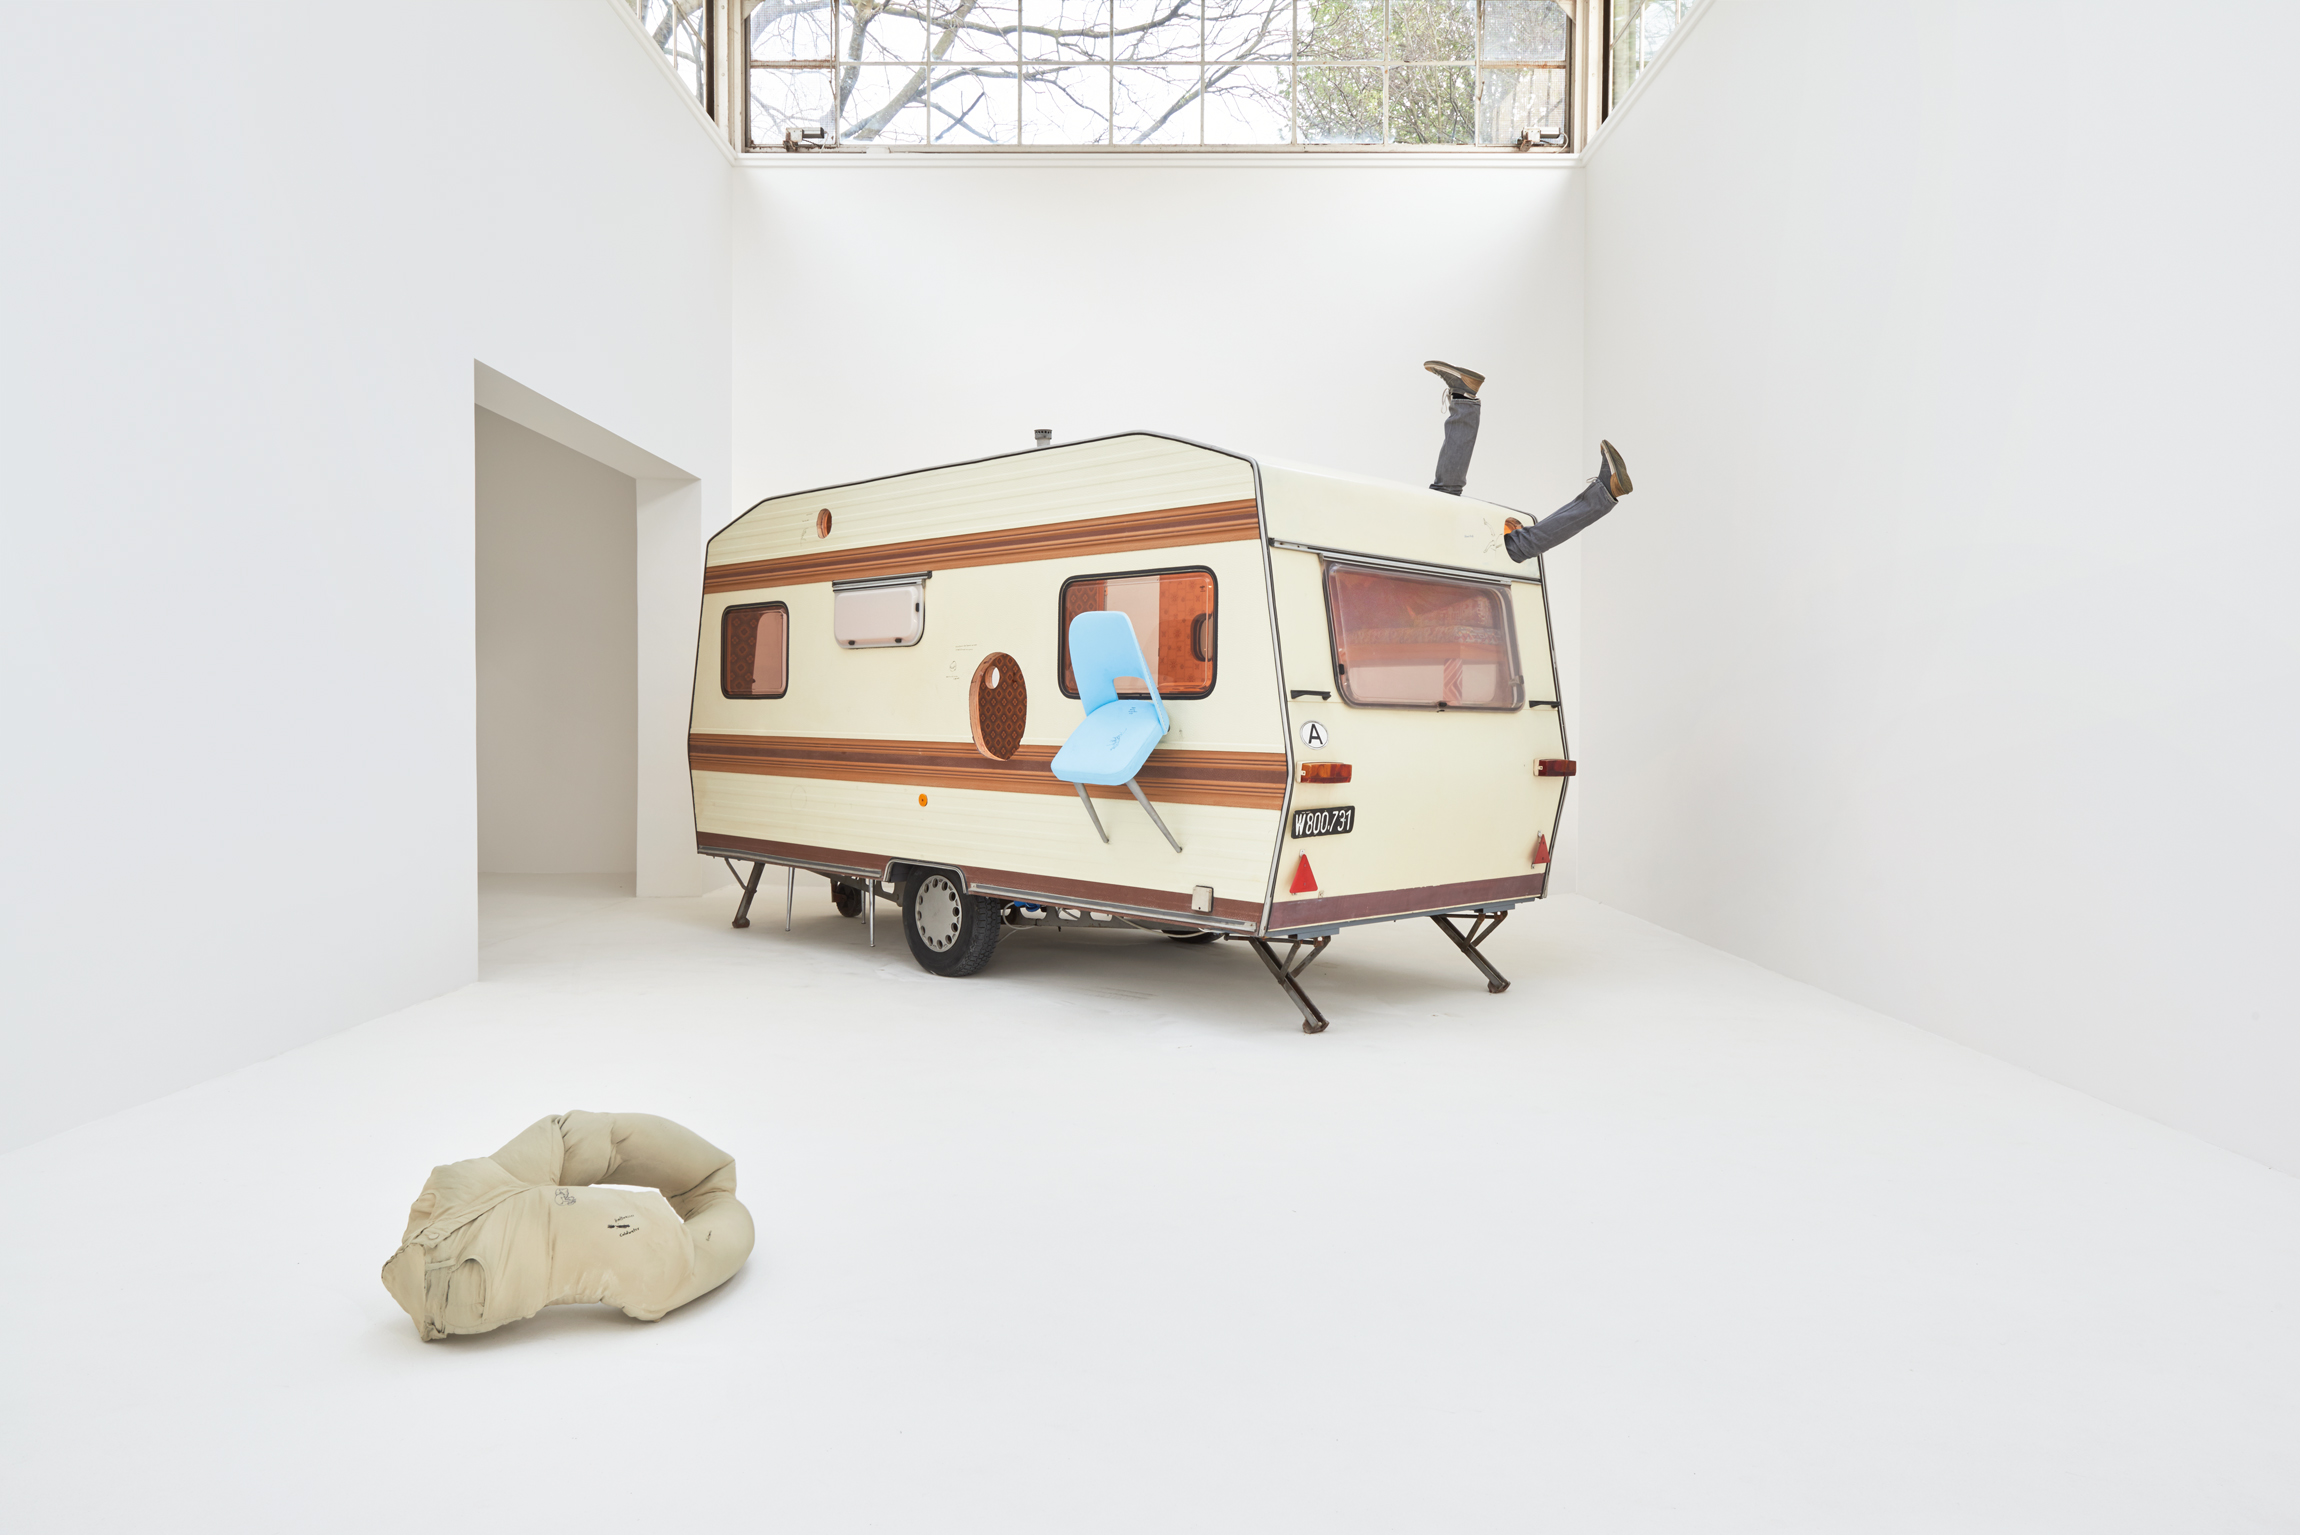 erwin wurm 39 s one minute sculptures are refreshing. Black Bedroom Furniture Sets. Home Design Ideas